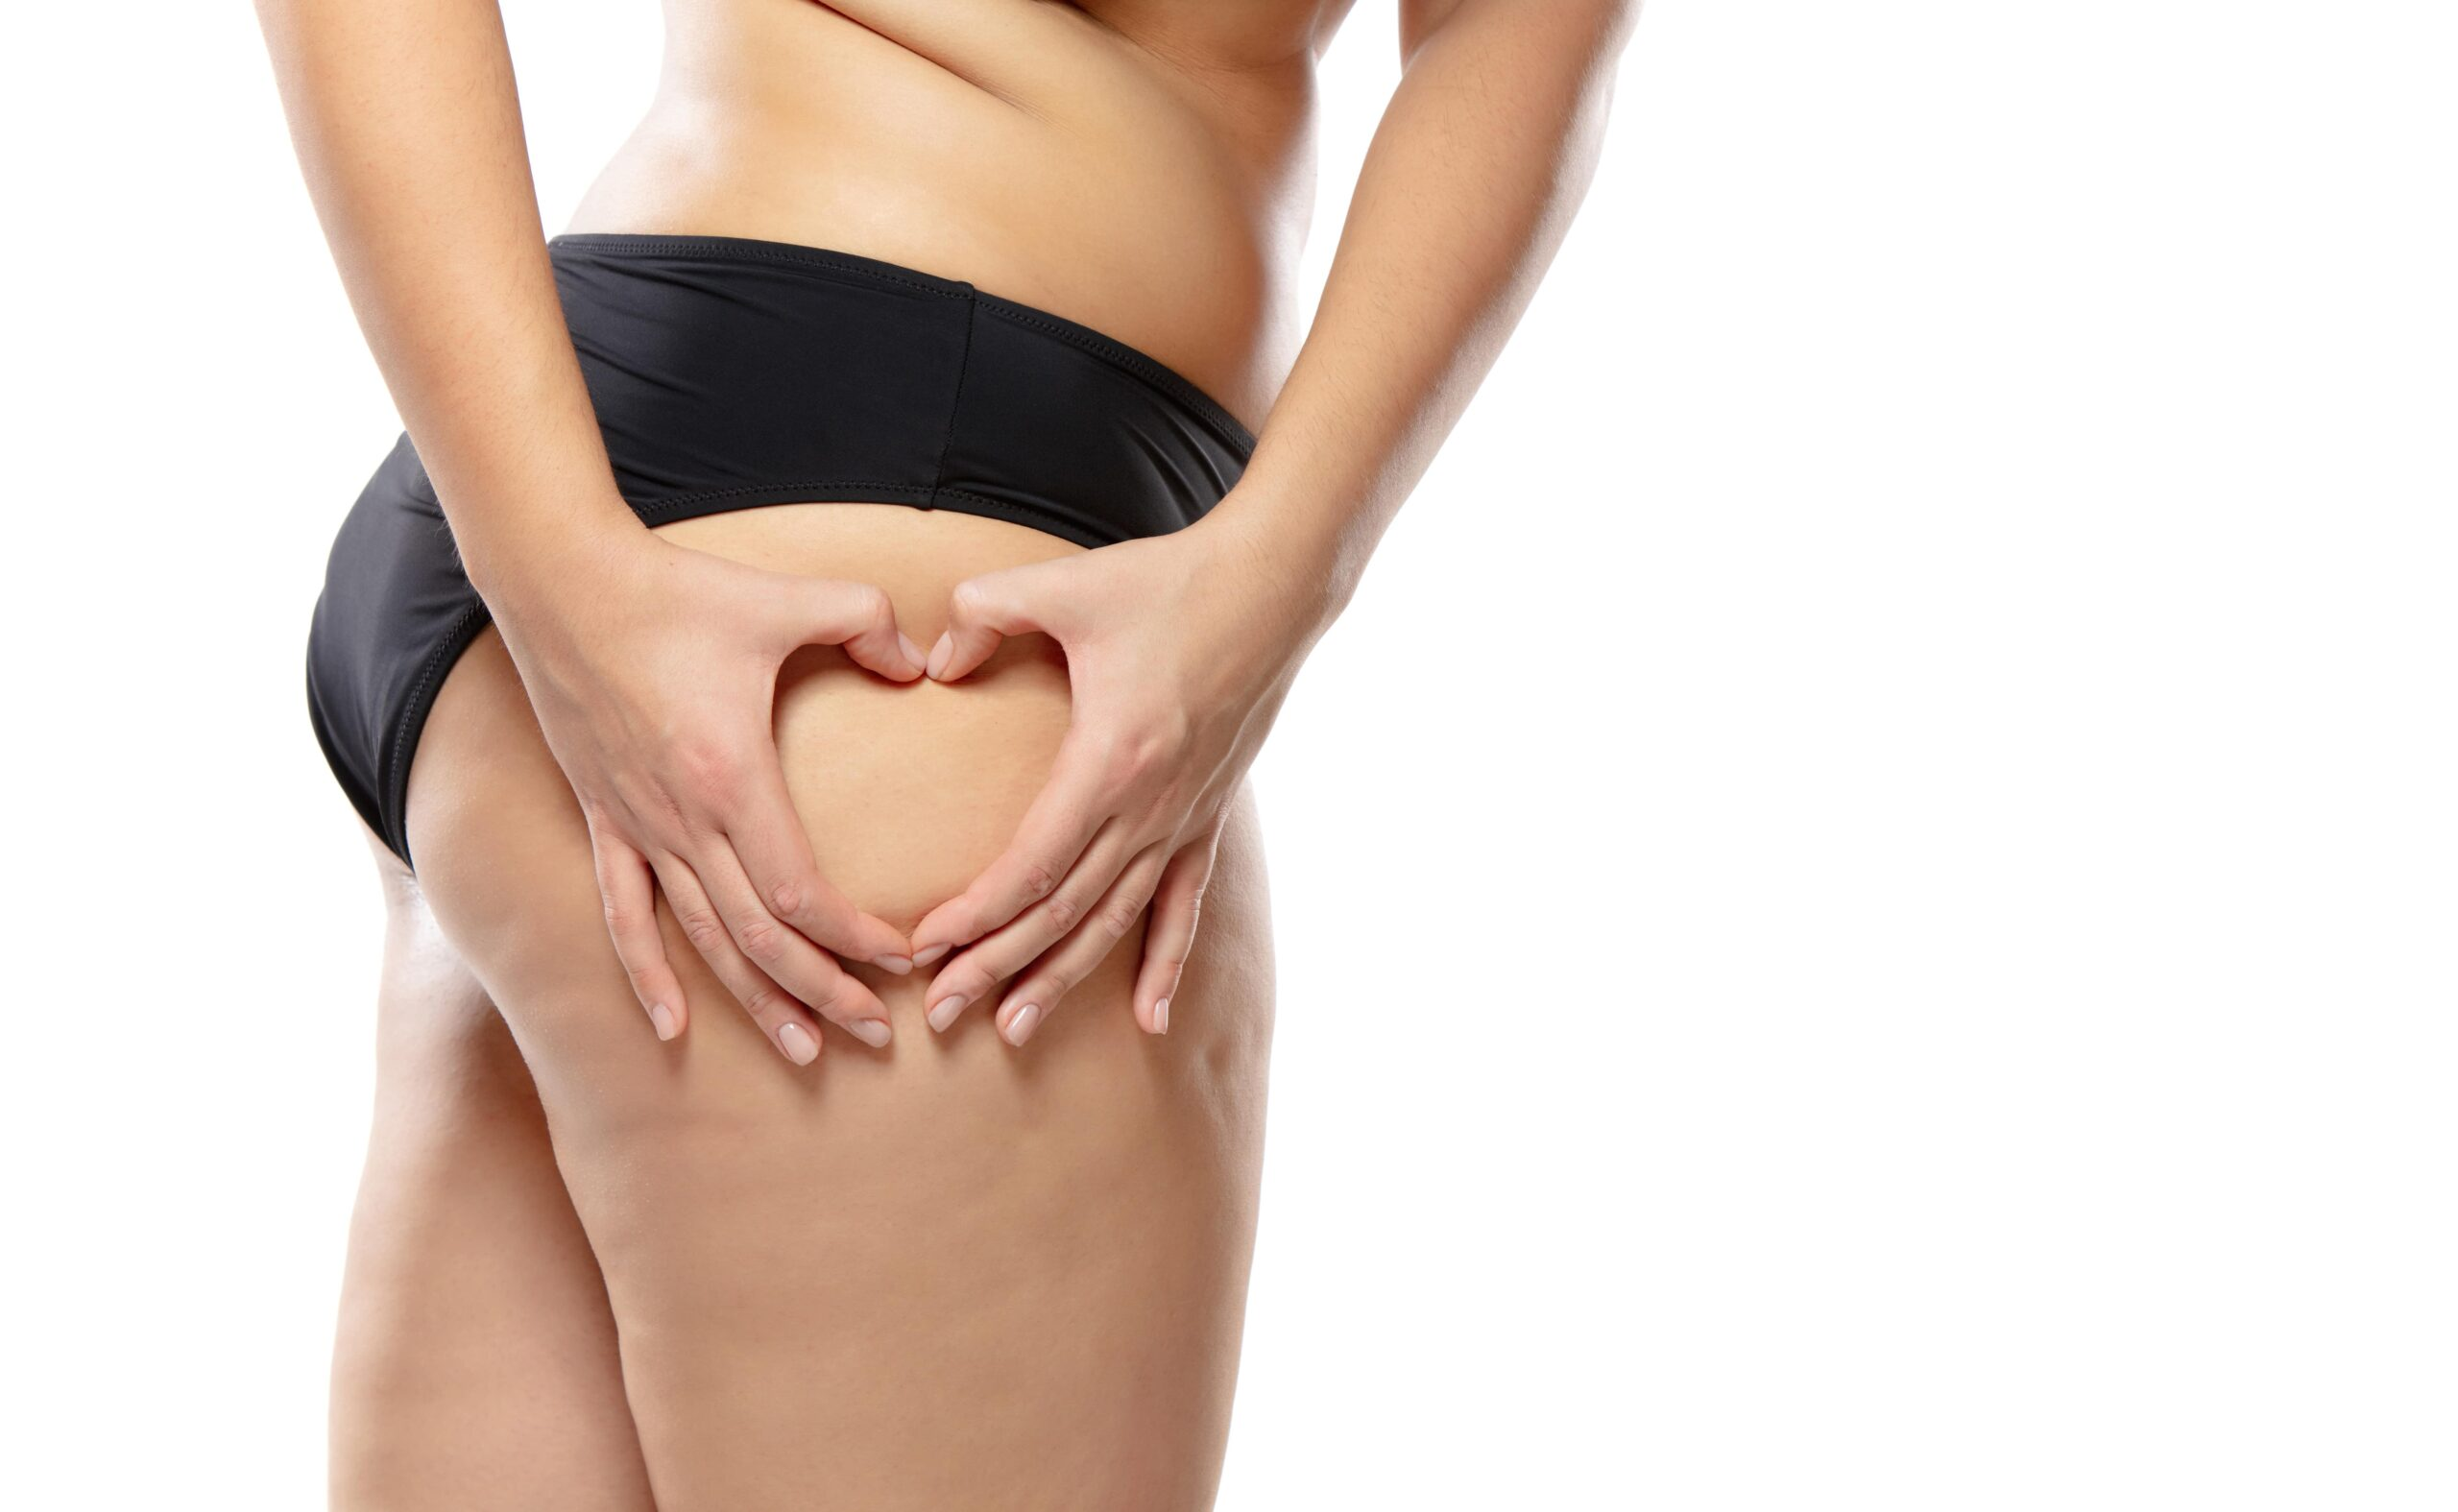 What foods cause cellulite on legs?